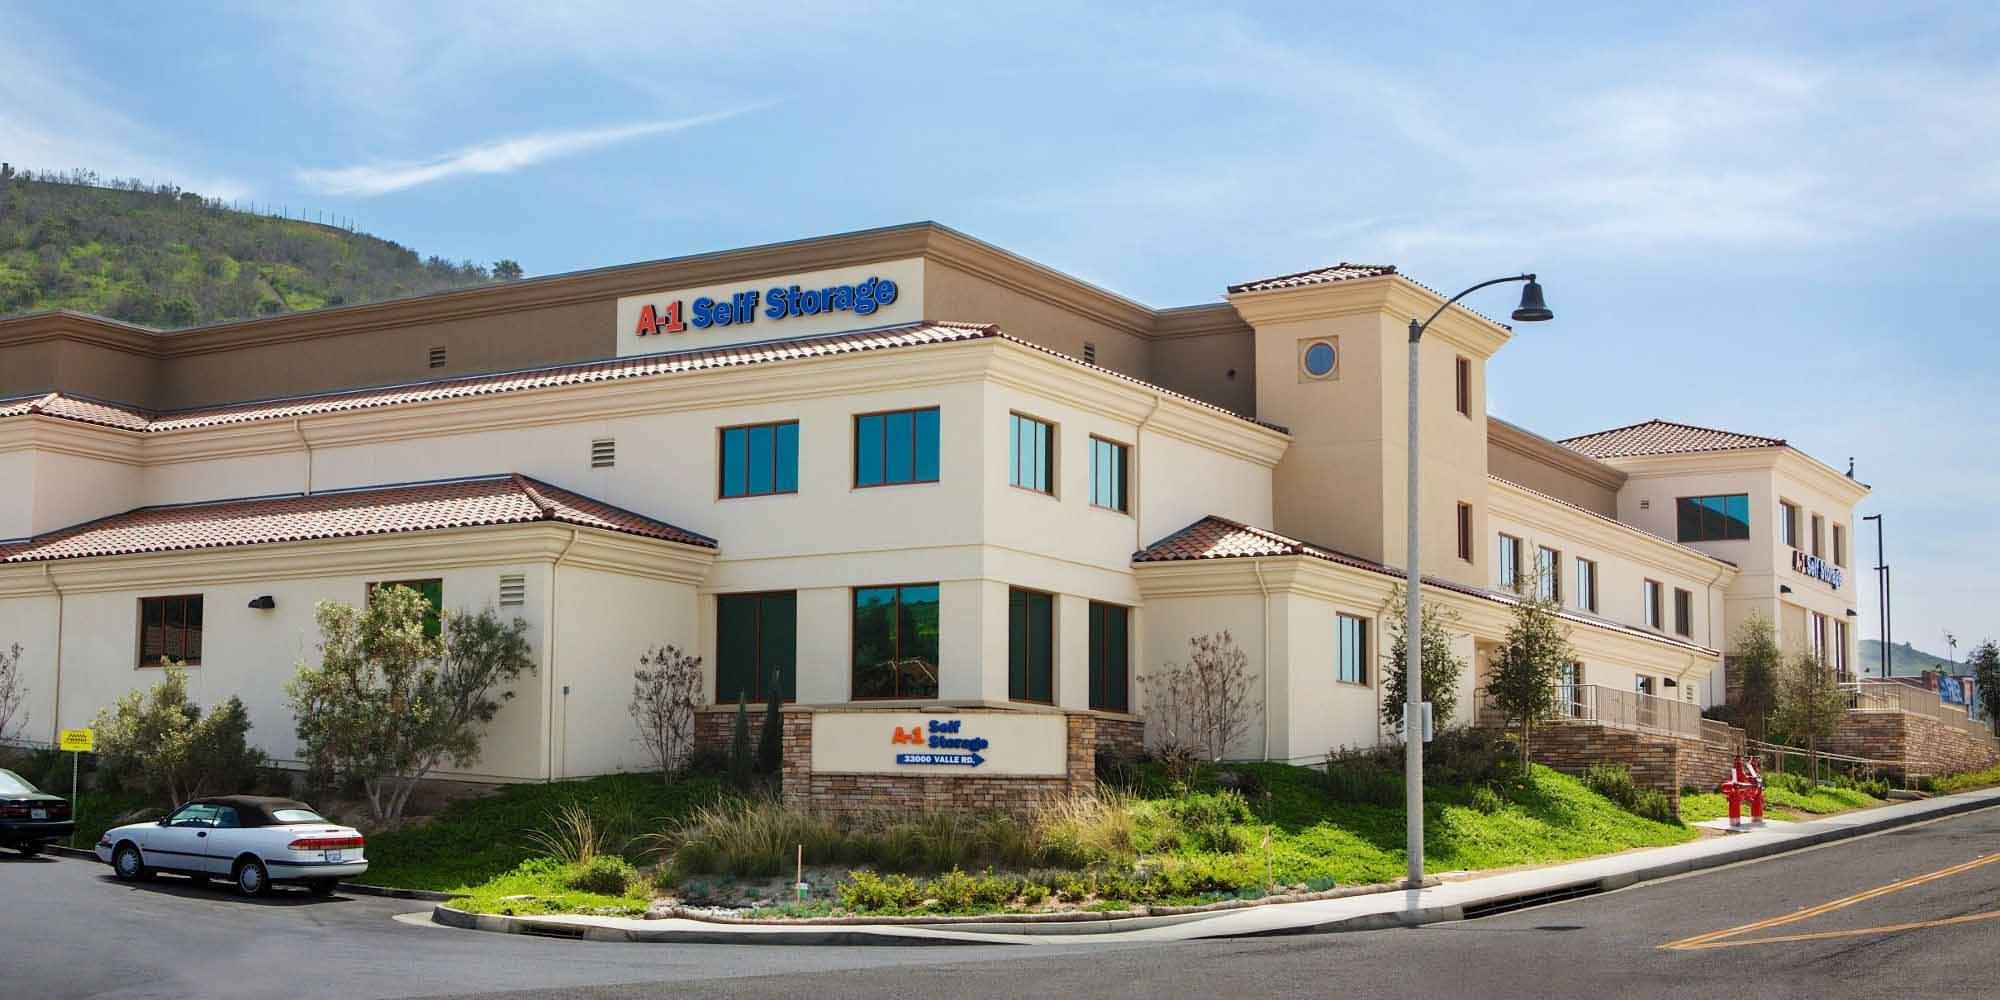 Self storage in San Juan Capistrano CA